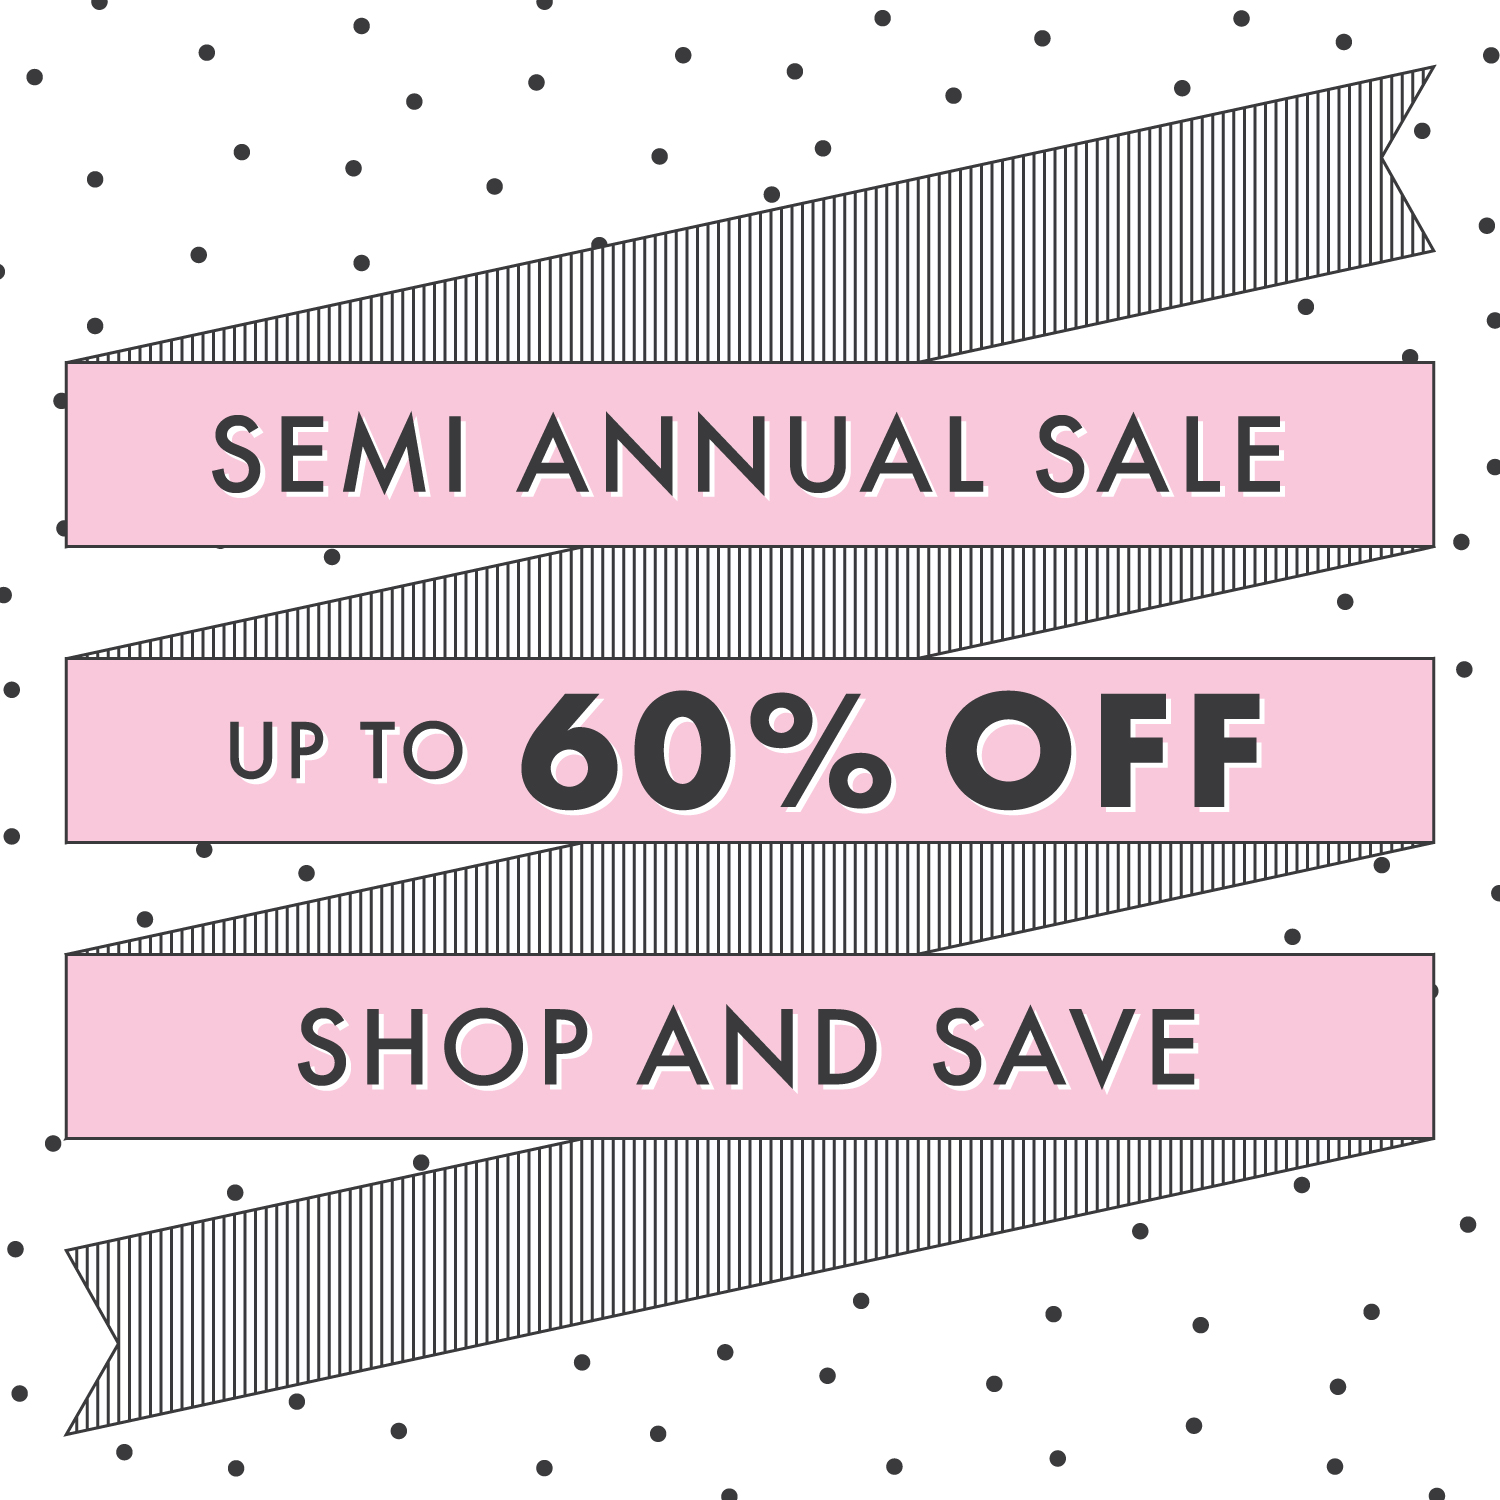 f1c9aecf380 It's time for the Semi-Annual Sale! Kick off your July the right way by  shopping tons of preppy goodies and gifts! From swim and beach to  sleepwear, ...